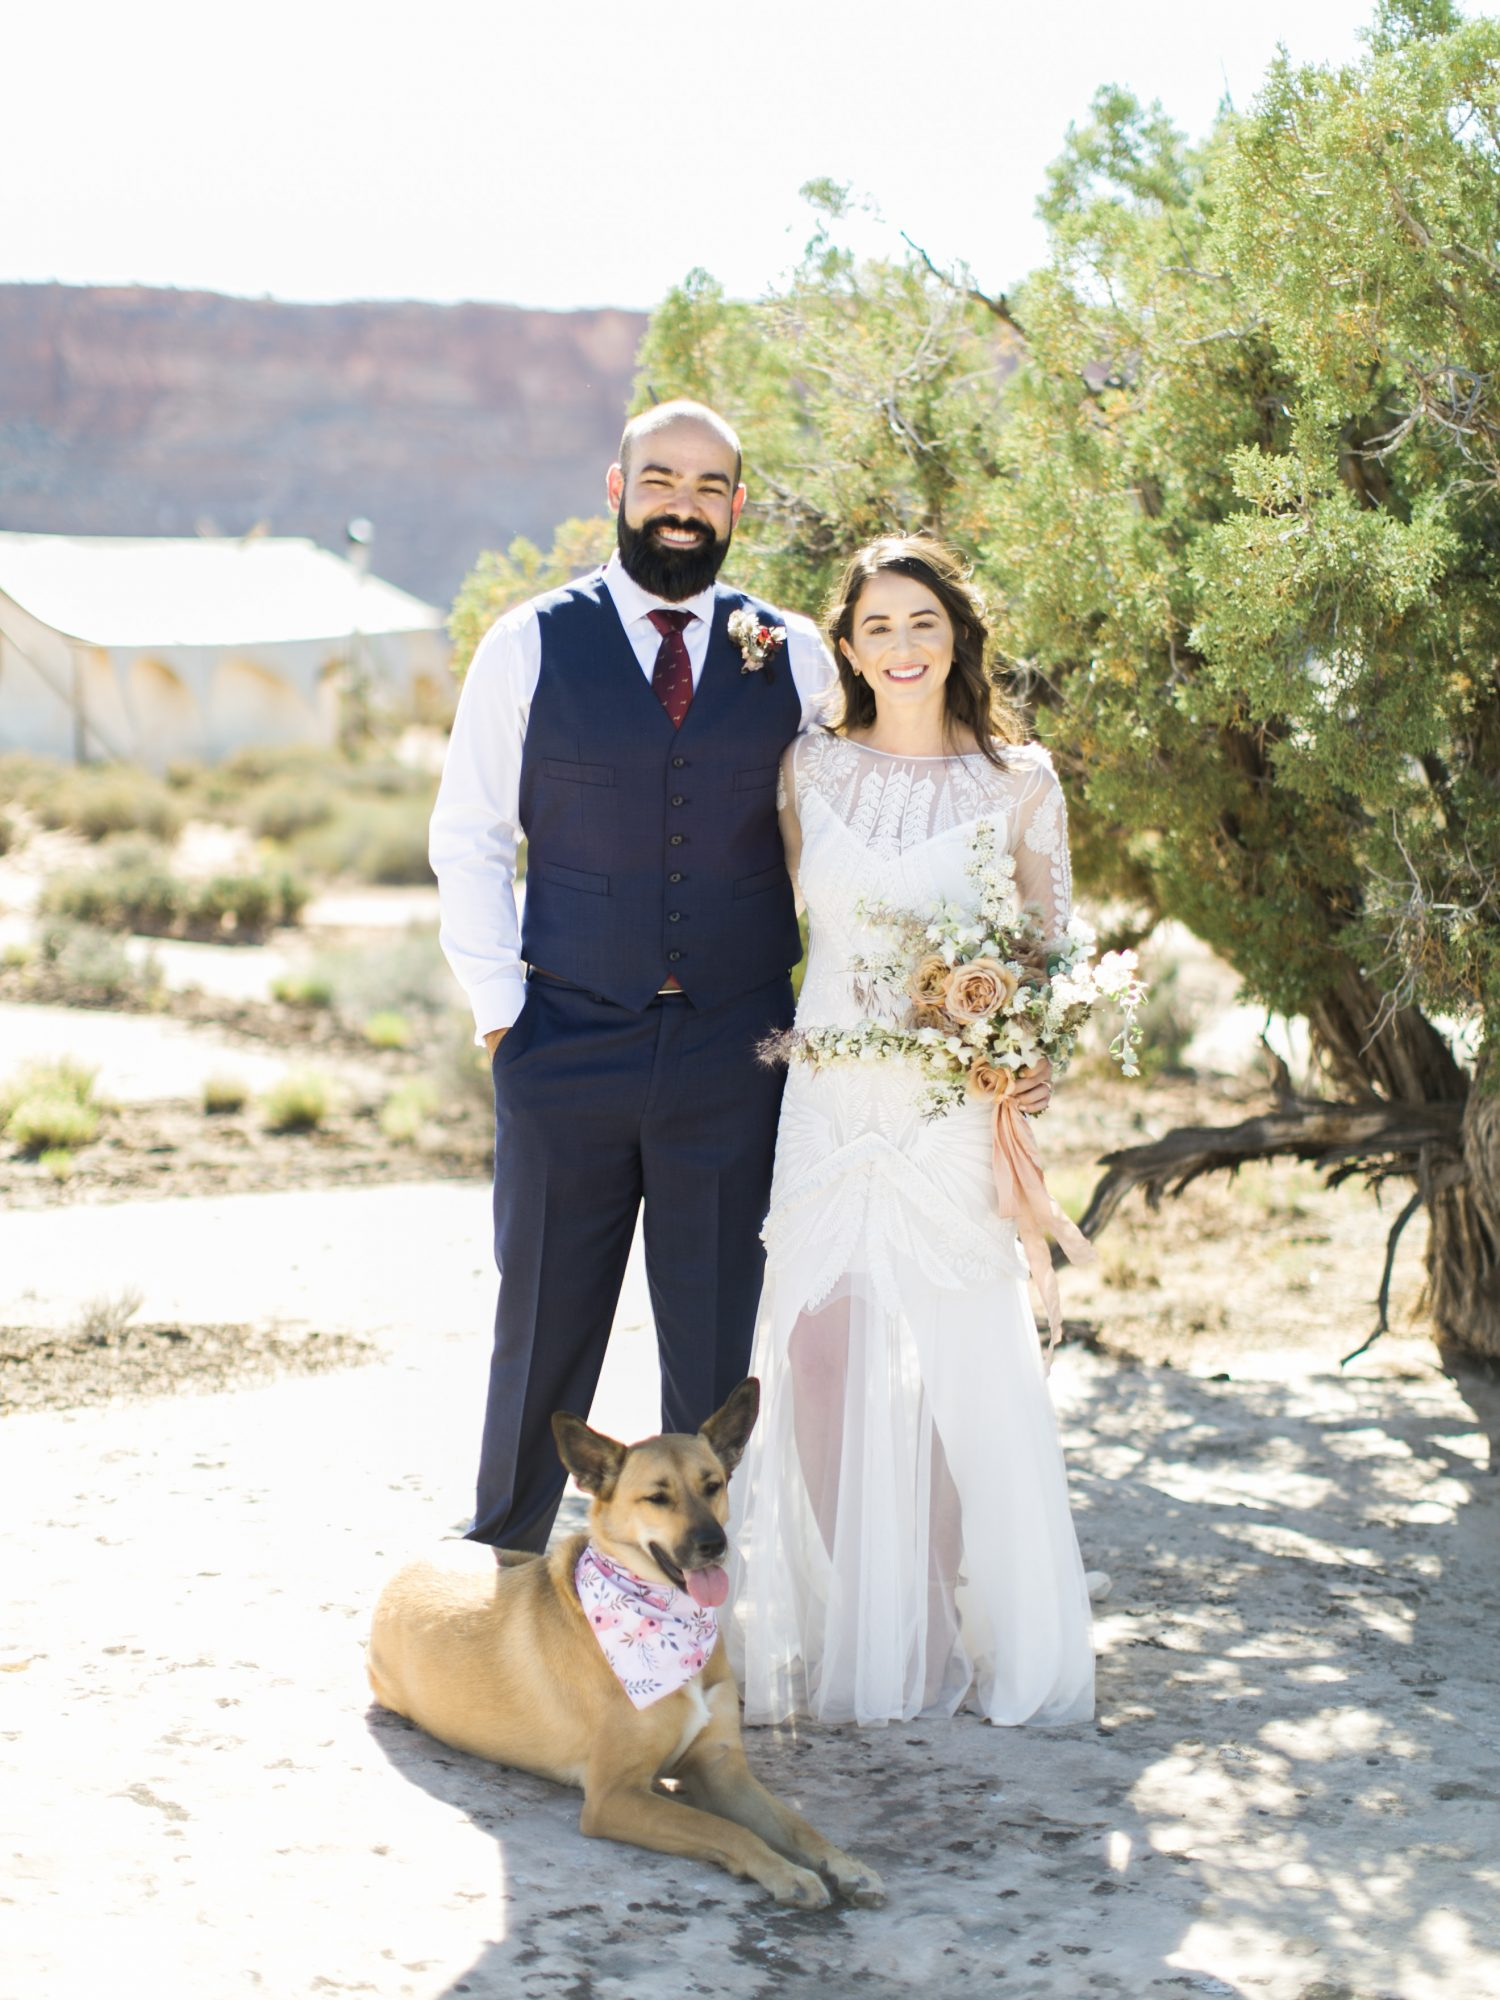 jeanette david wedding desert couple dog